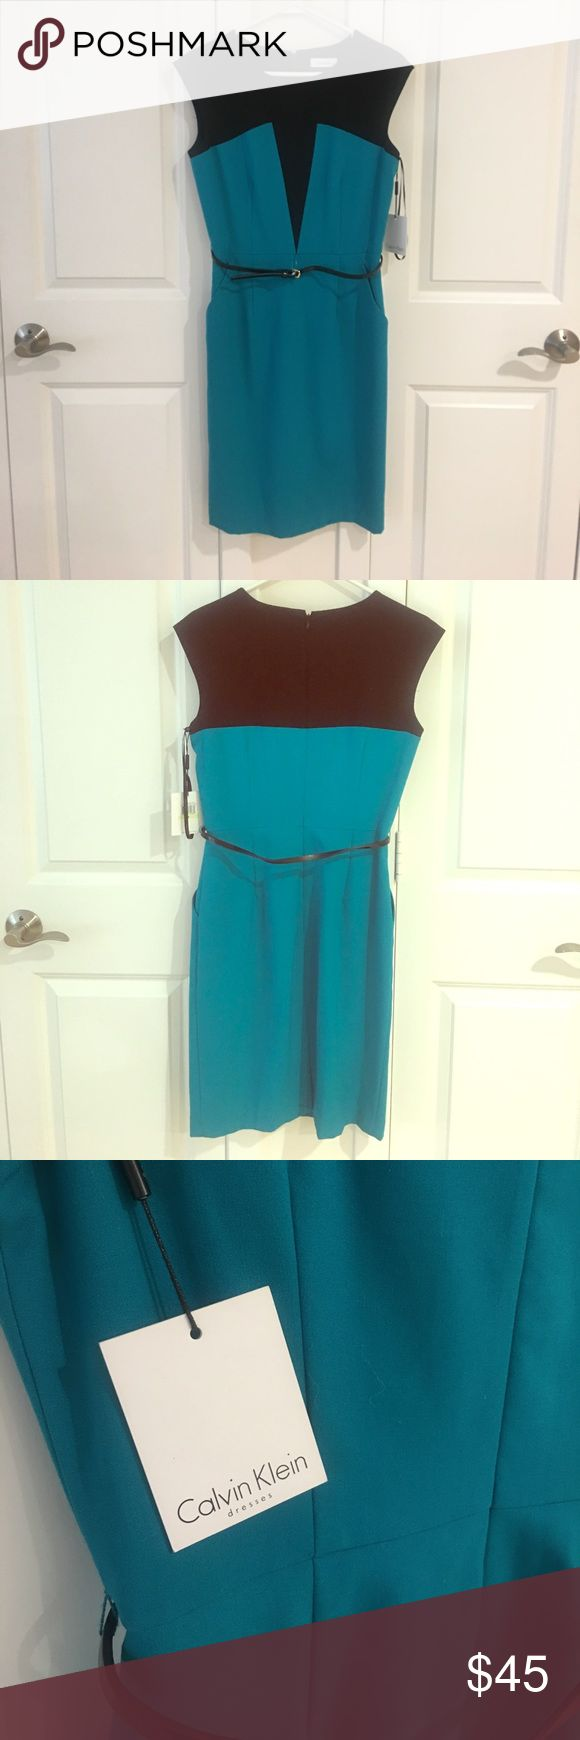 Business Professional Calvin Klein Dress Beautiful NWT, never been worn business professional dress from Calvin Klein. Hits just at the knee - I am 5'3. Come with a skinny black belt  that can be removed if desired. Gorgeous teal color! Calvin Klein Dresses